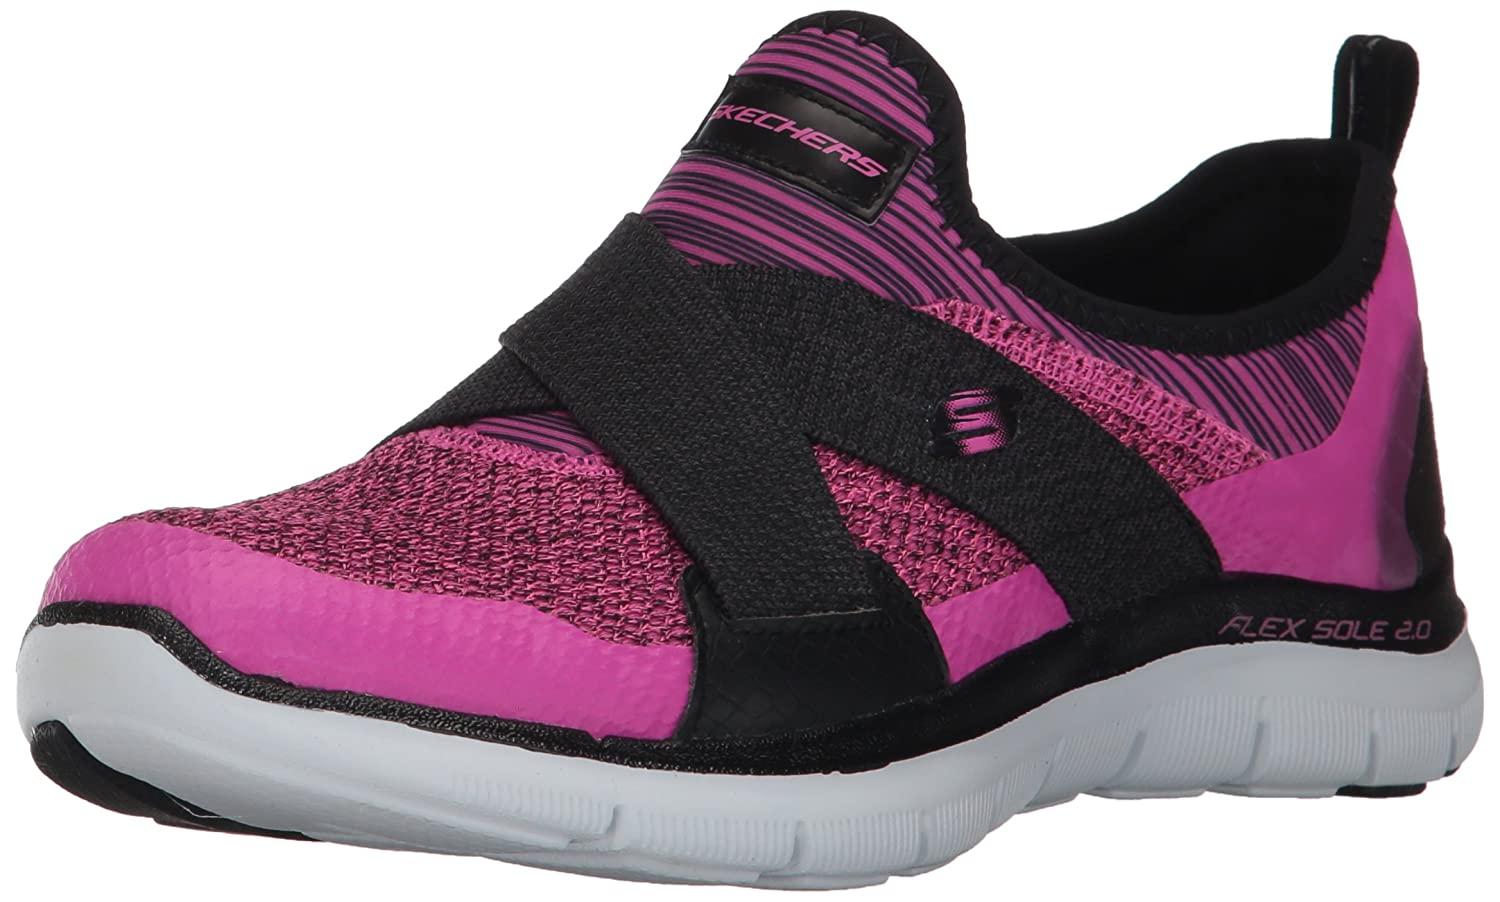 Skechers Women's Flex Appeal New Image Sneaker B01ITQ3C74 9.5 B(M) US|Hot Pink/Black